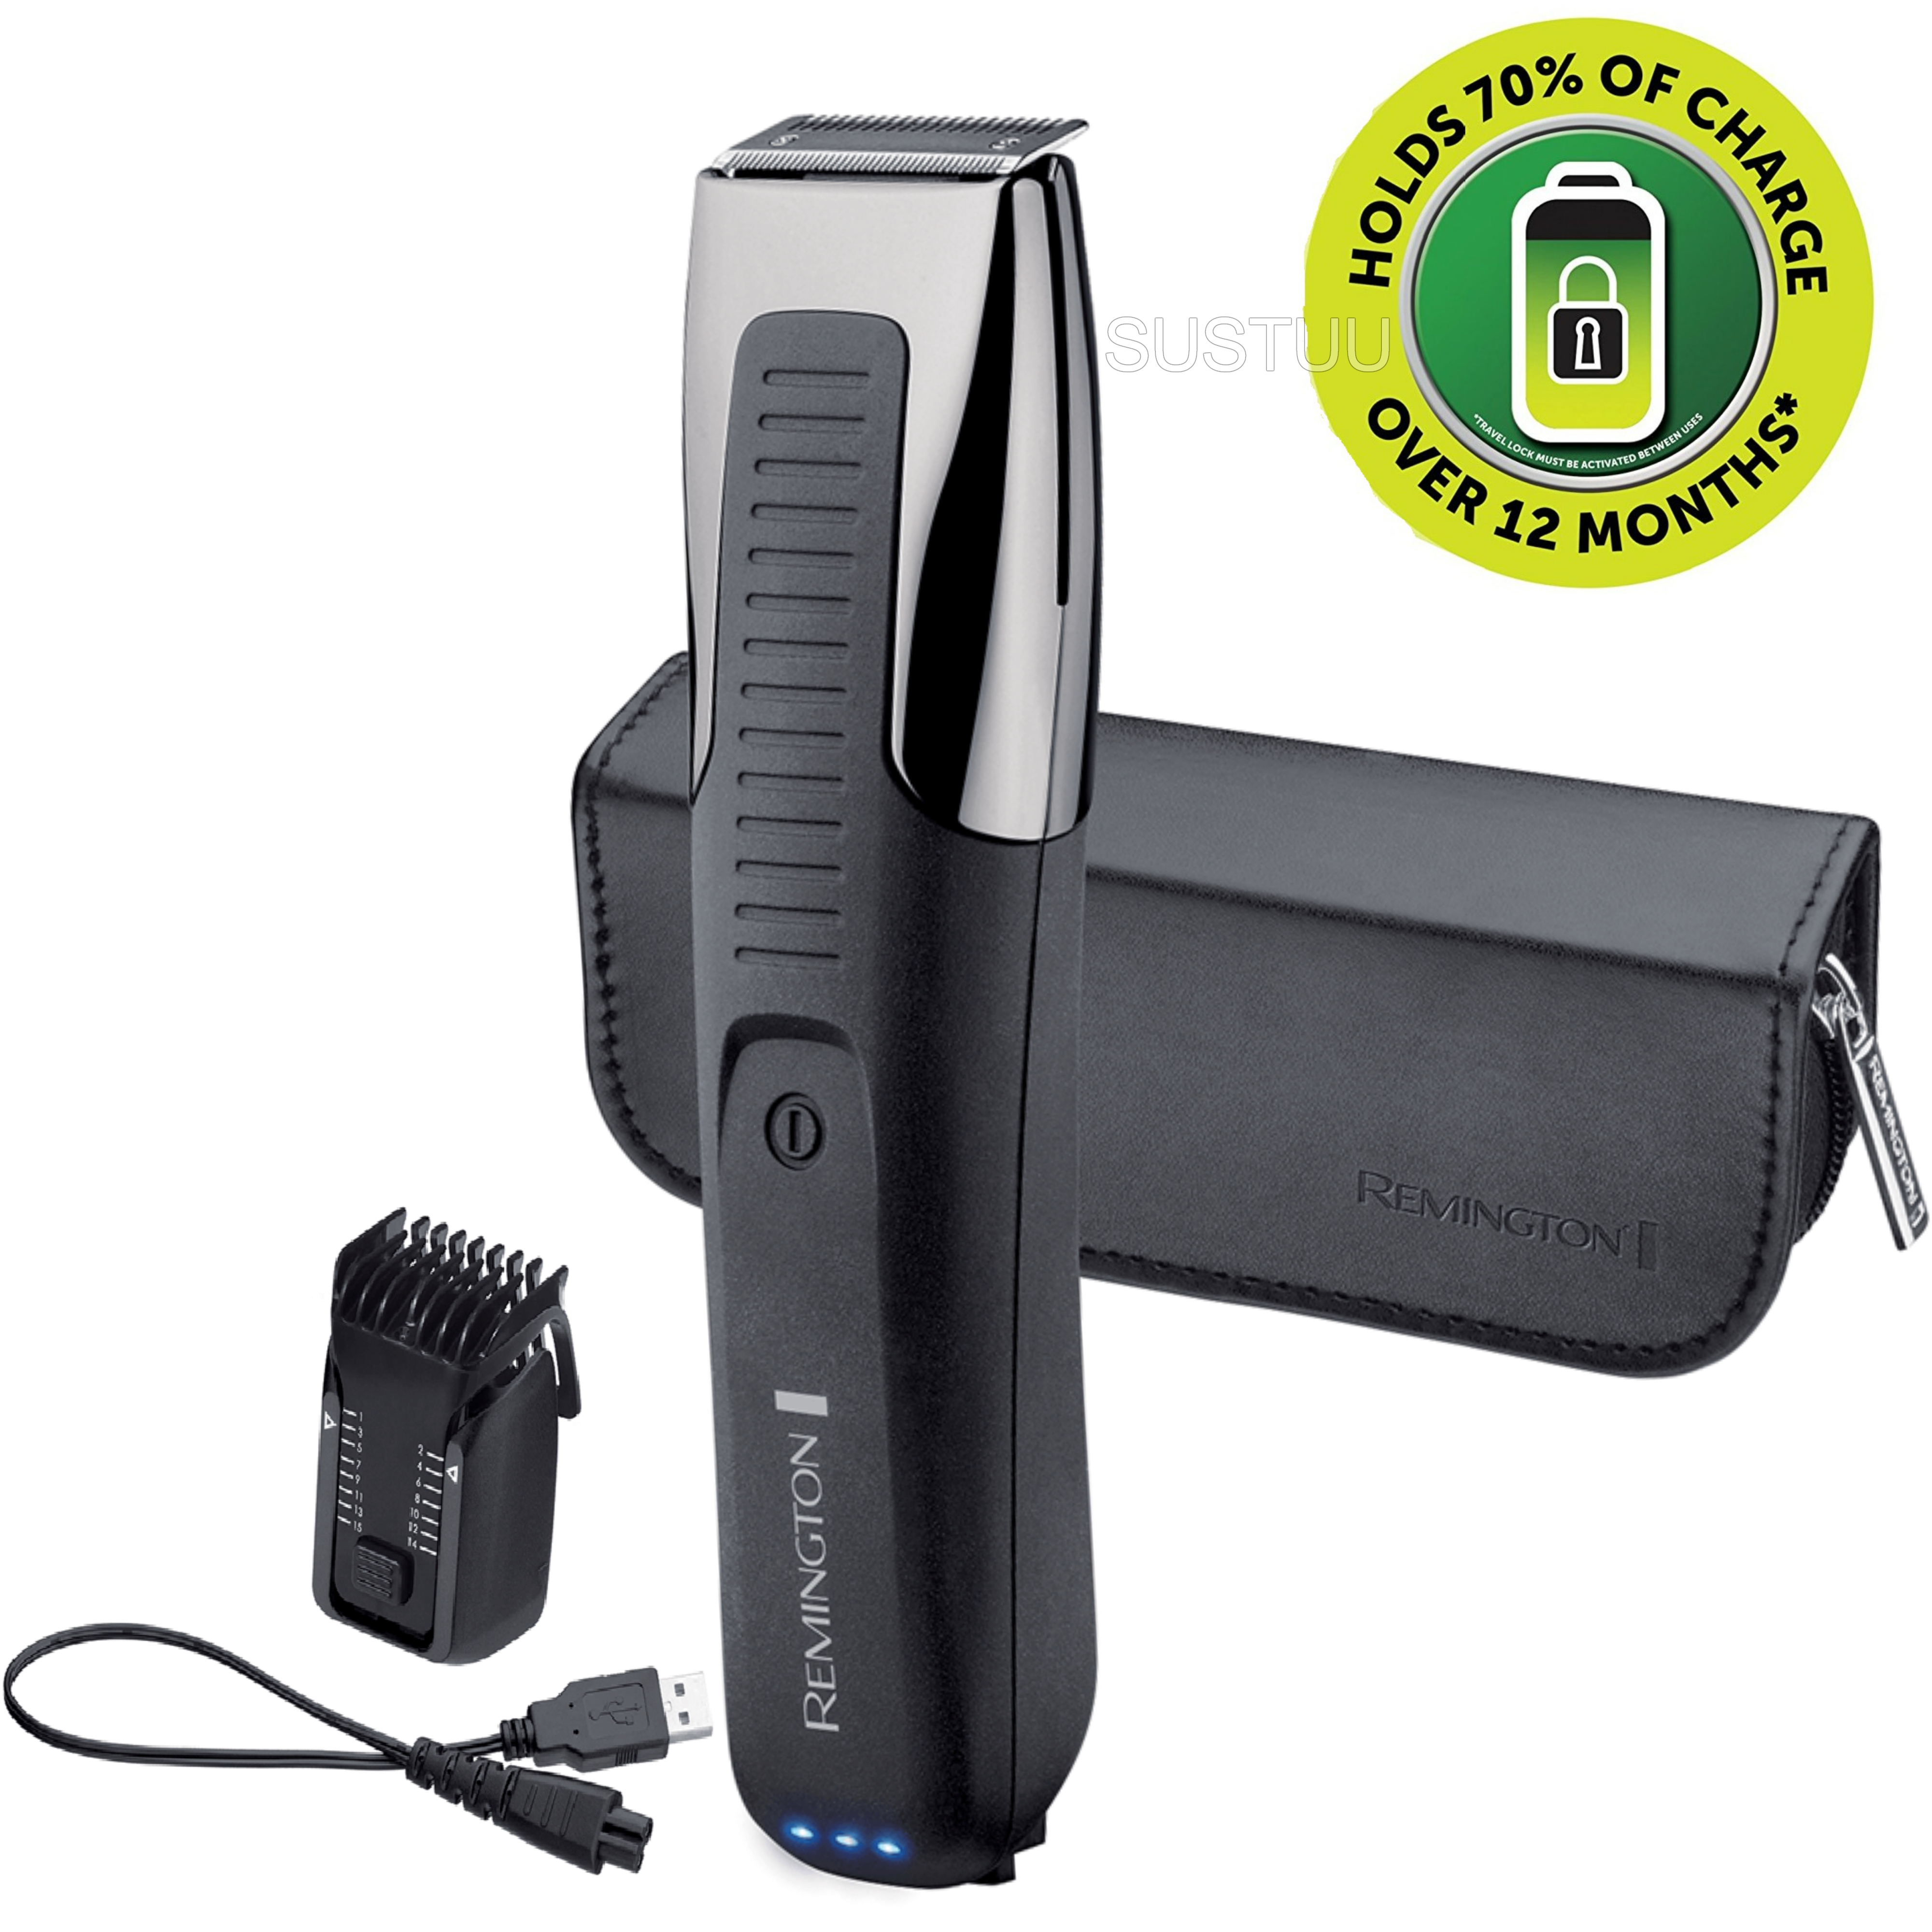 Remington Beard Trimmer | Rechargeable Electric Groomer | Endurance Technology | MB4200